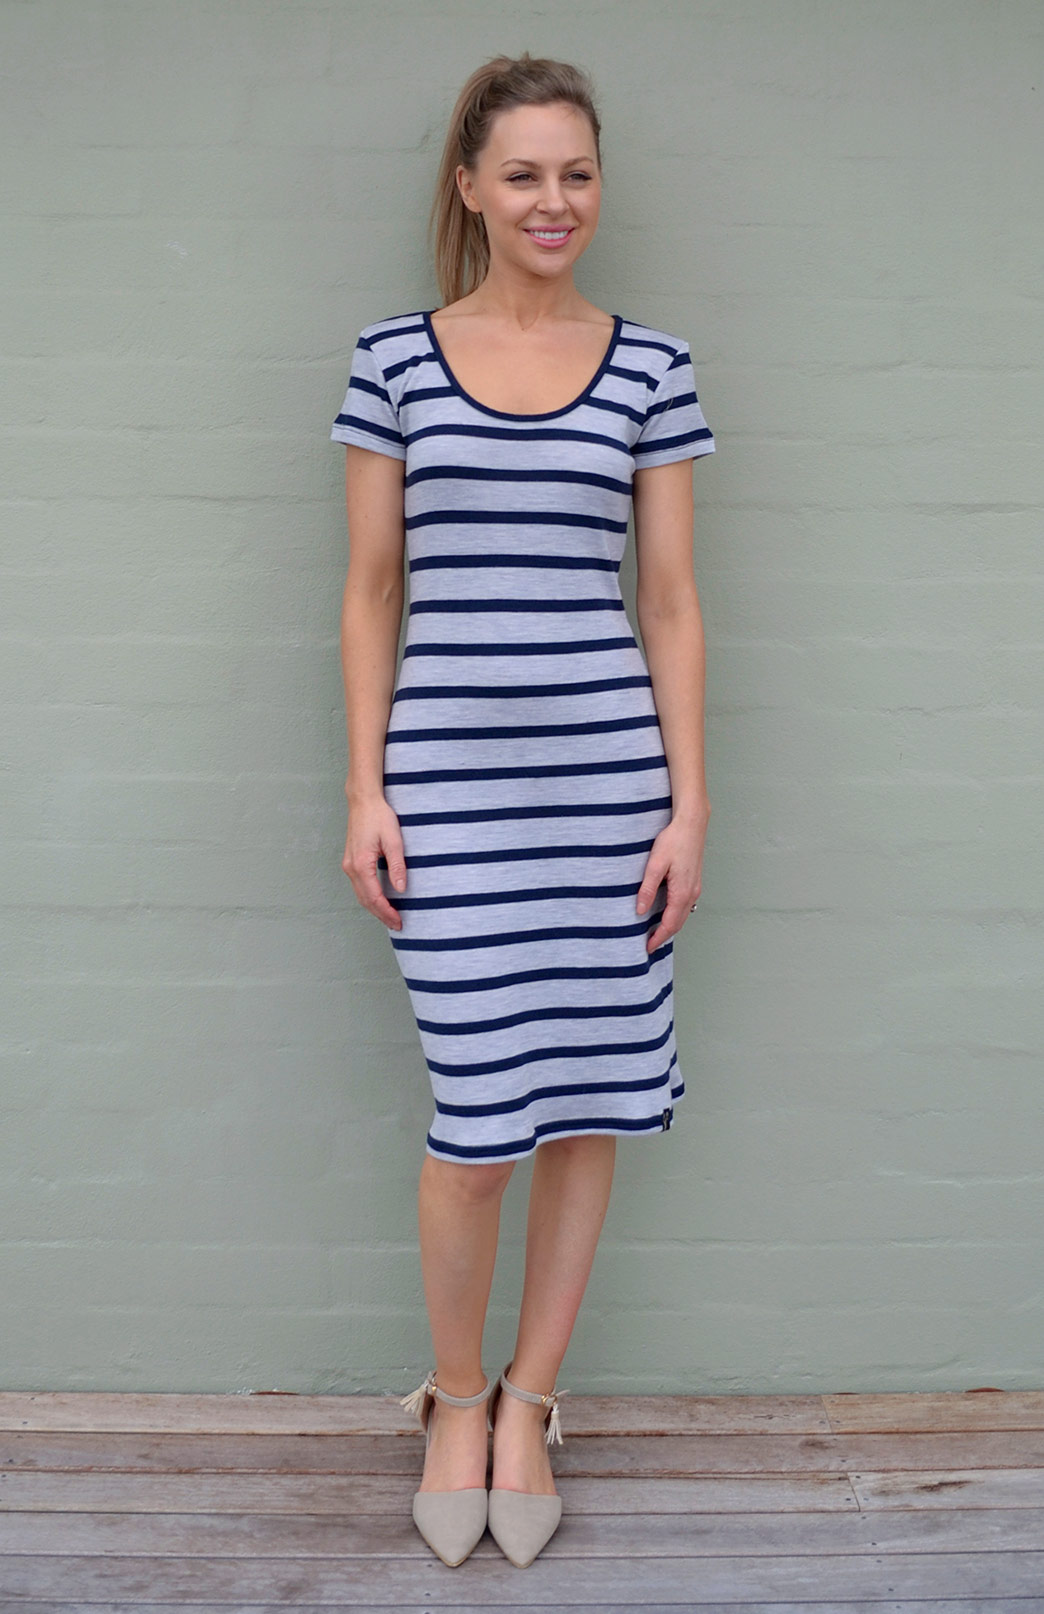 Scoop Neck Dress - Short Sleeve - Women's Striped Short Sleeve Scoop Neck Summer Dress - Smitten Merino Tasmania Australia